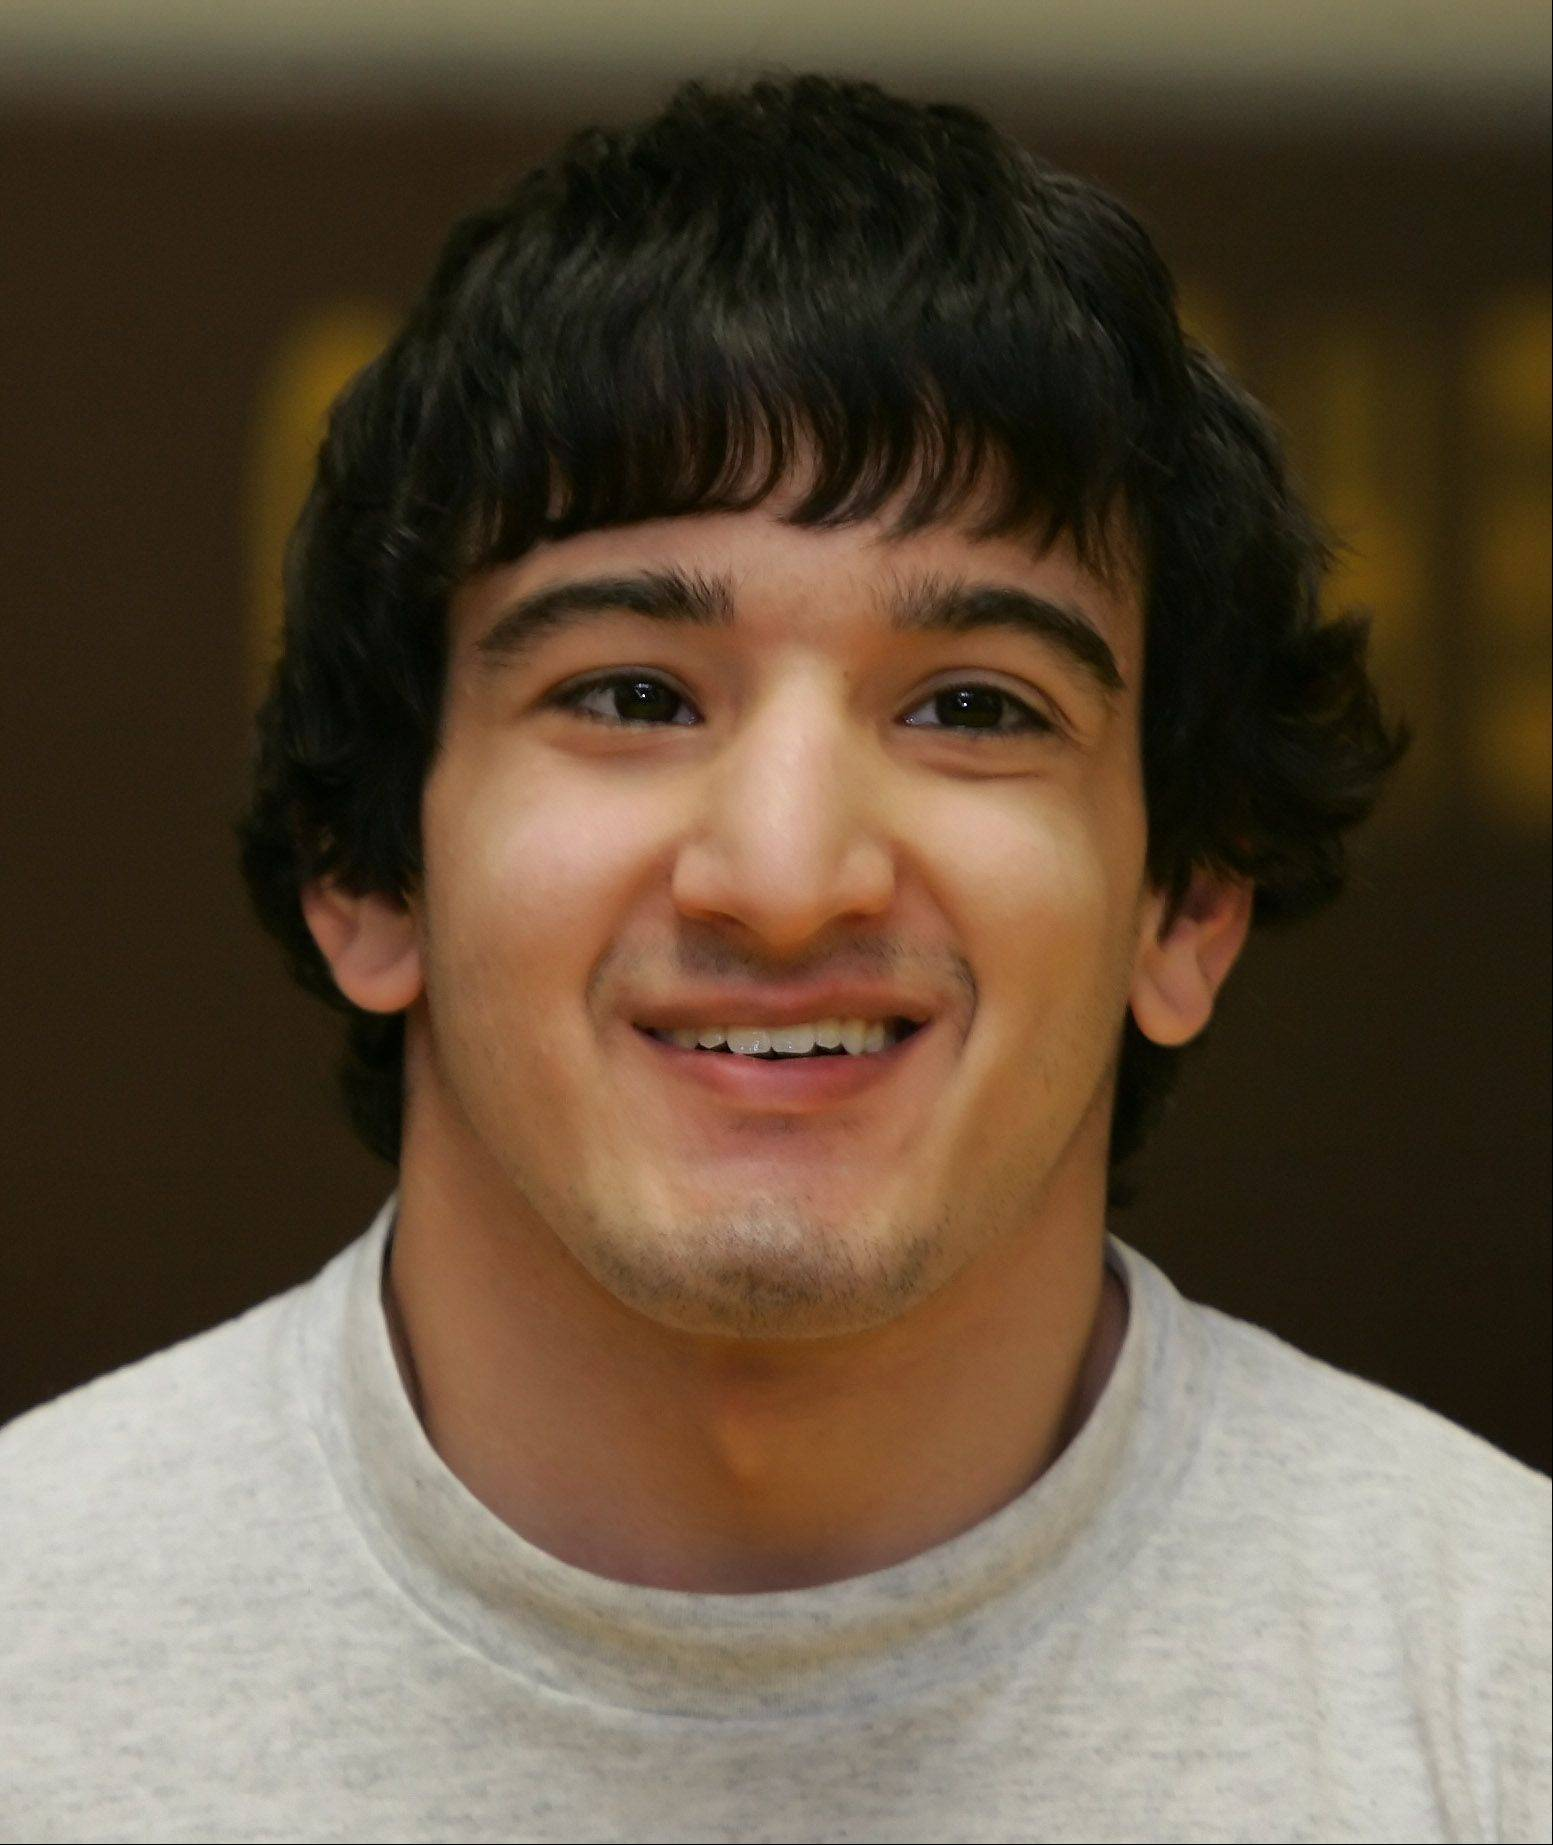 Carmel Catholic wrestler Cristian Migliarese has spina bifida but has won twice by pin so far this season.